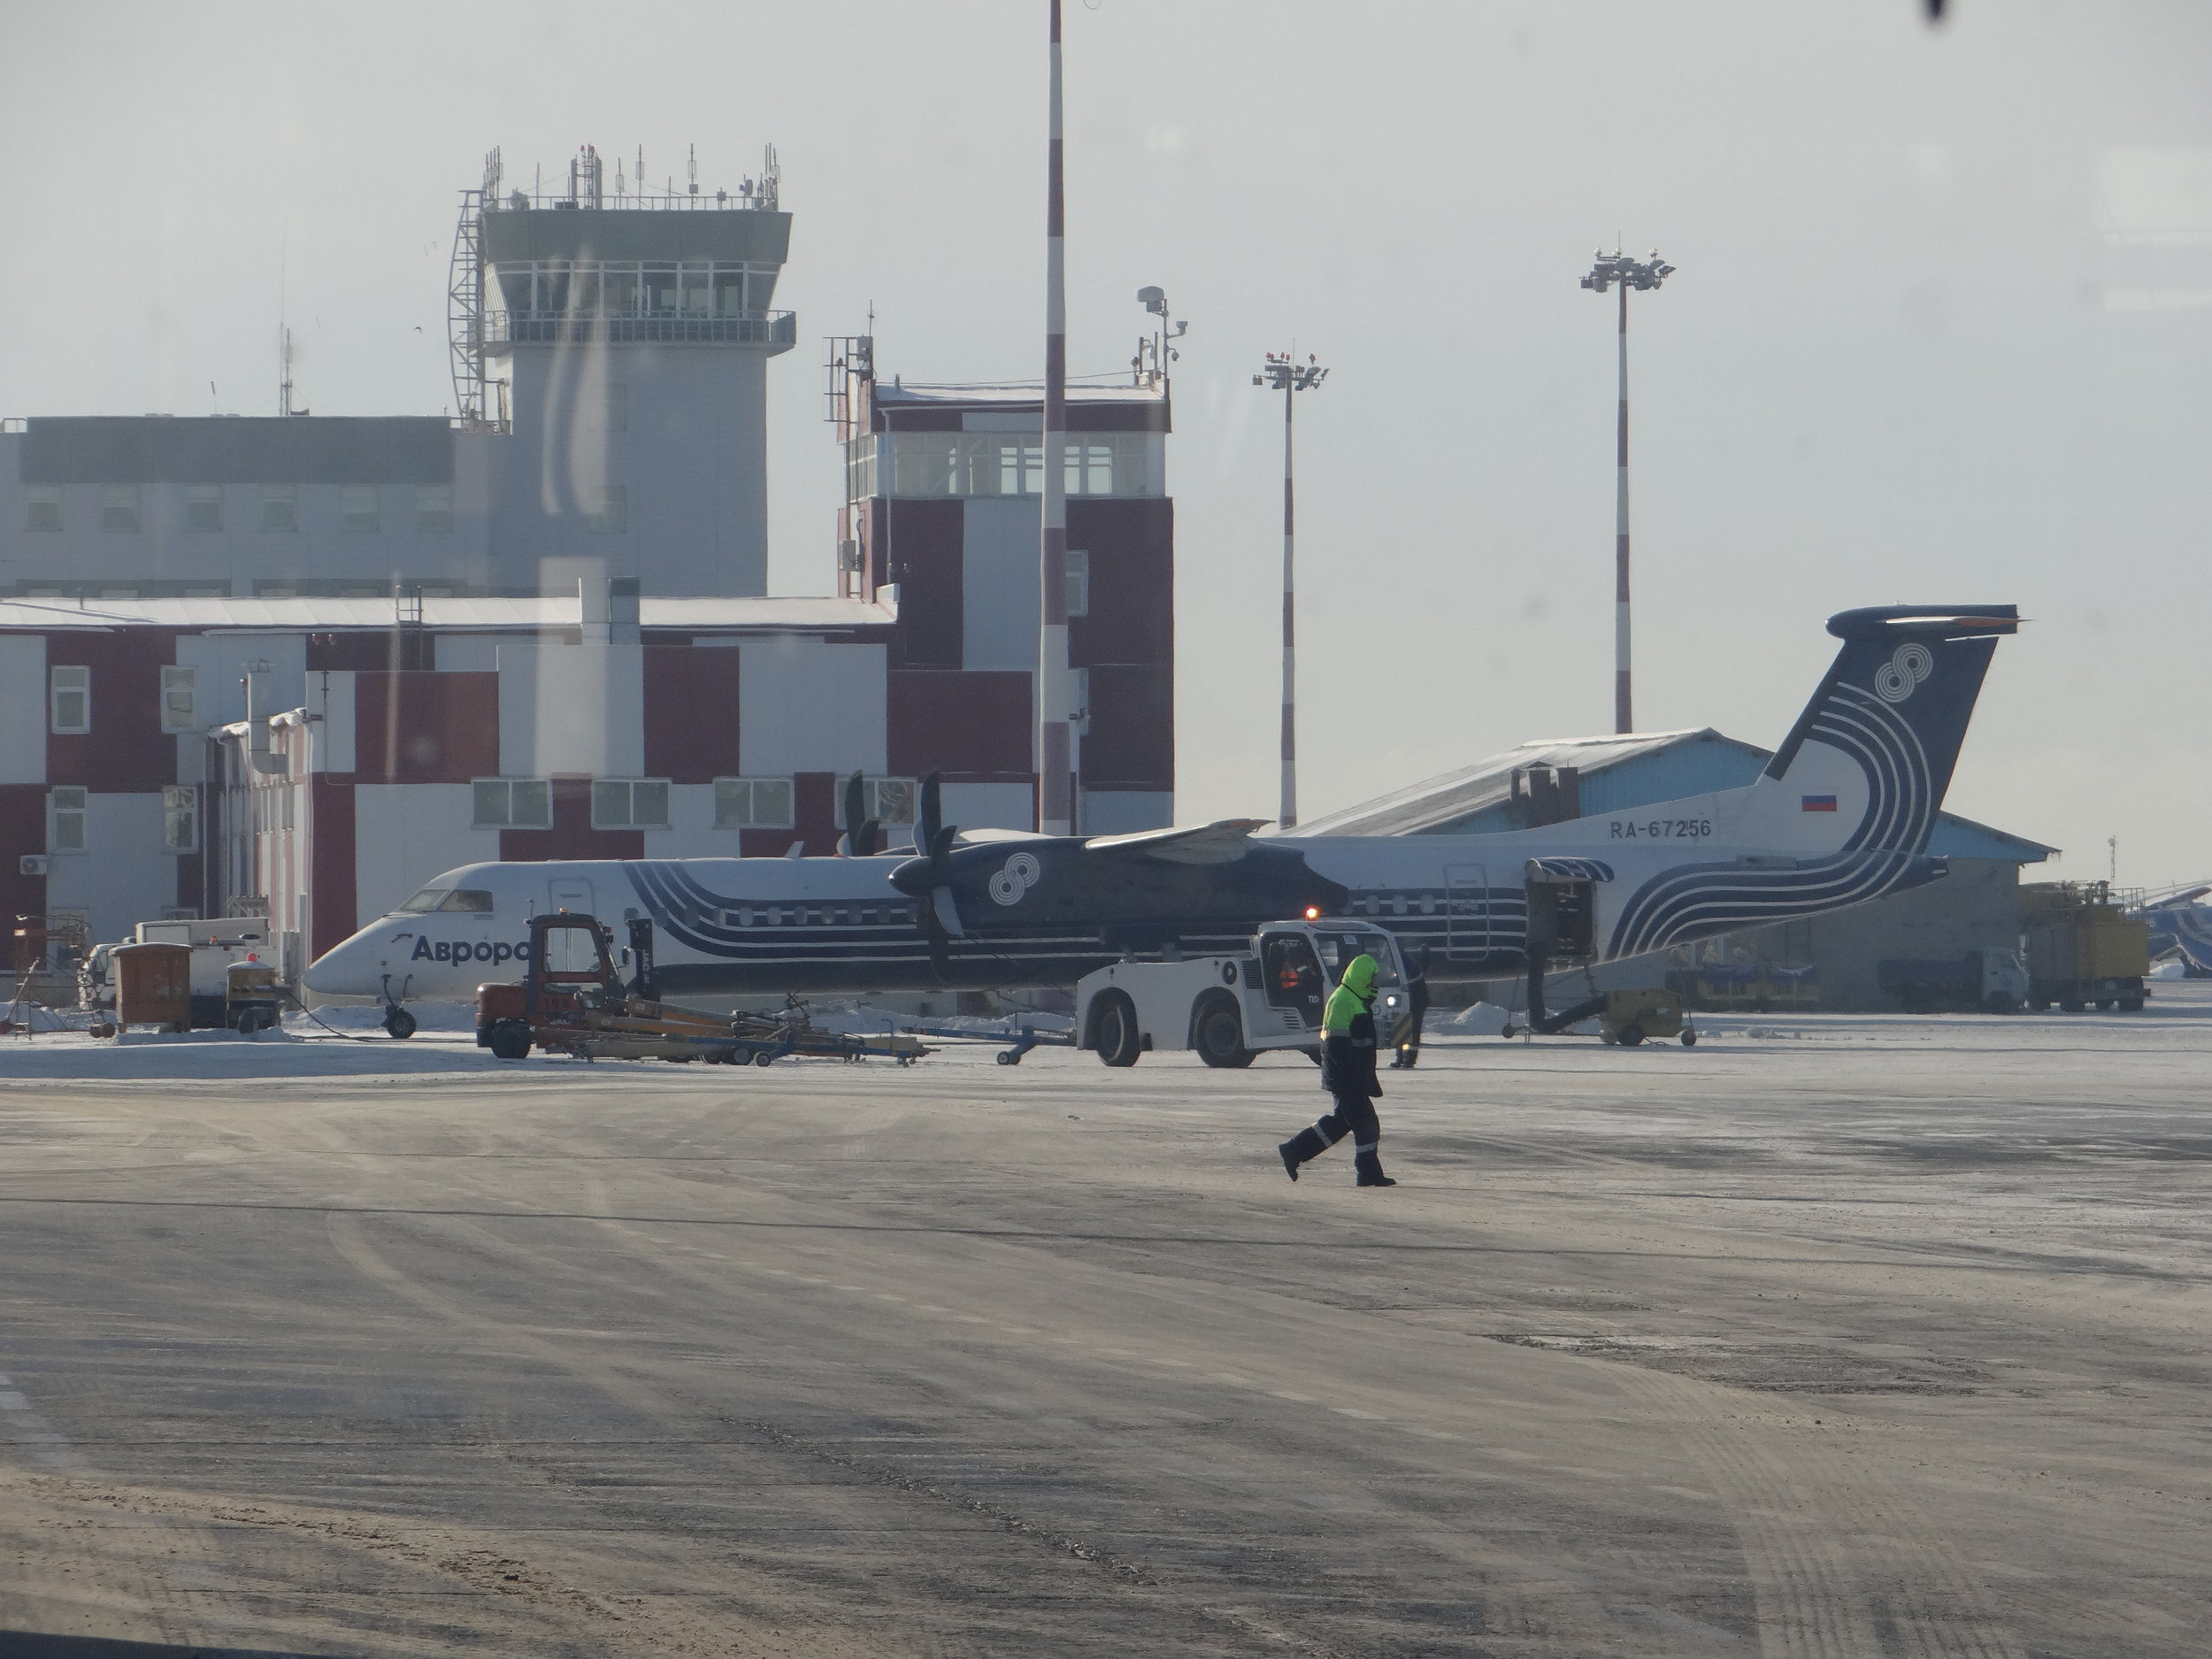 Aurora uses Bombardier Dash turboprops to link Yuzhno-Sakhalinsk to several smaller outlying islands